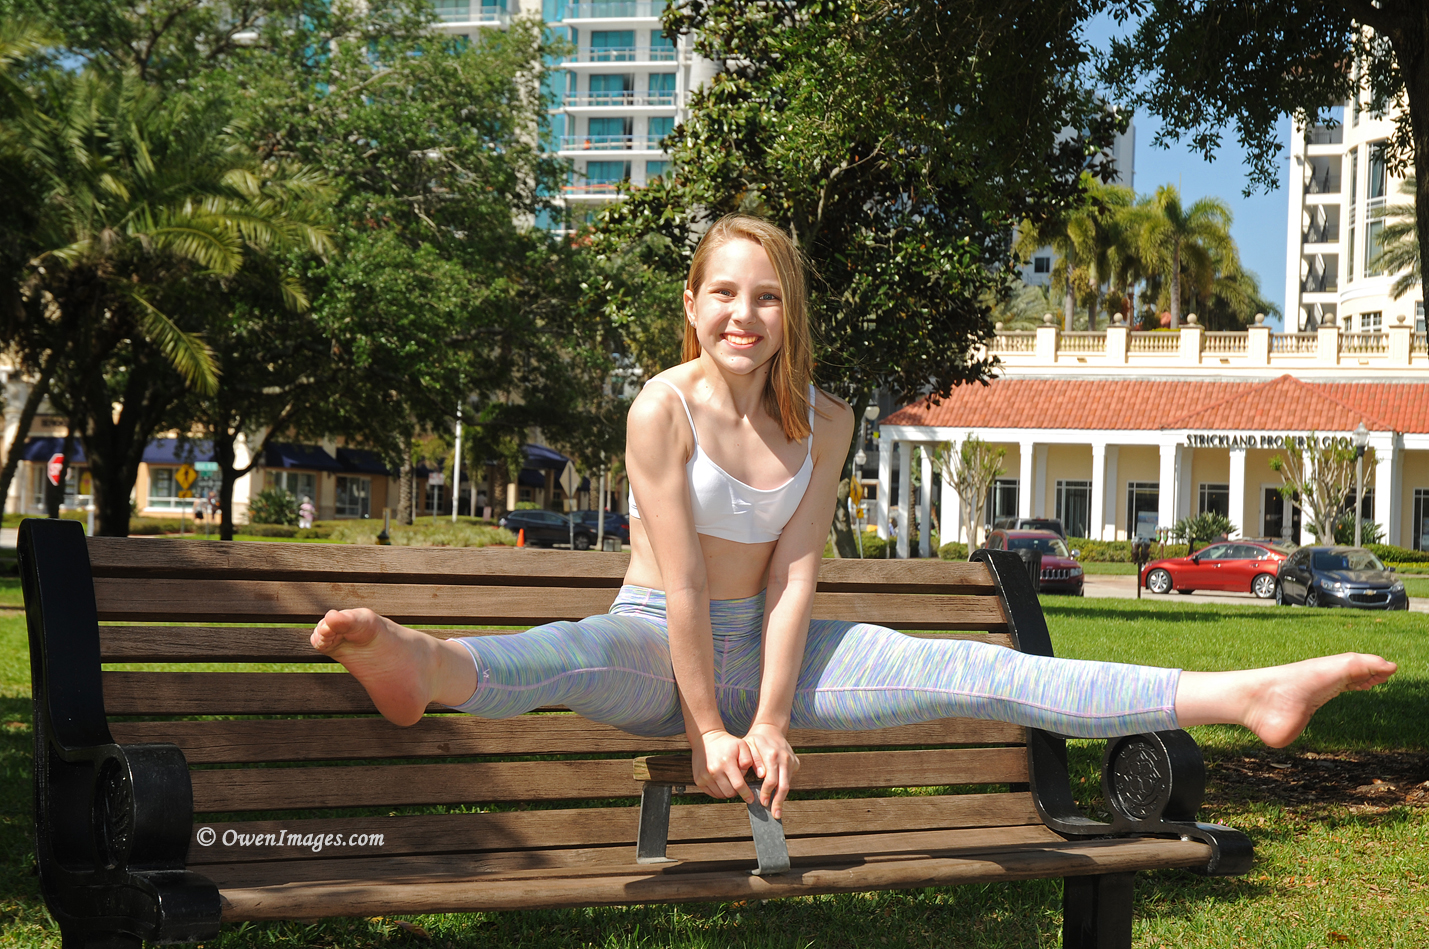 Gymnast pressing up on a park bench in downtown St Petersburg, Florida